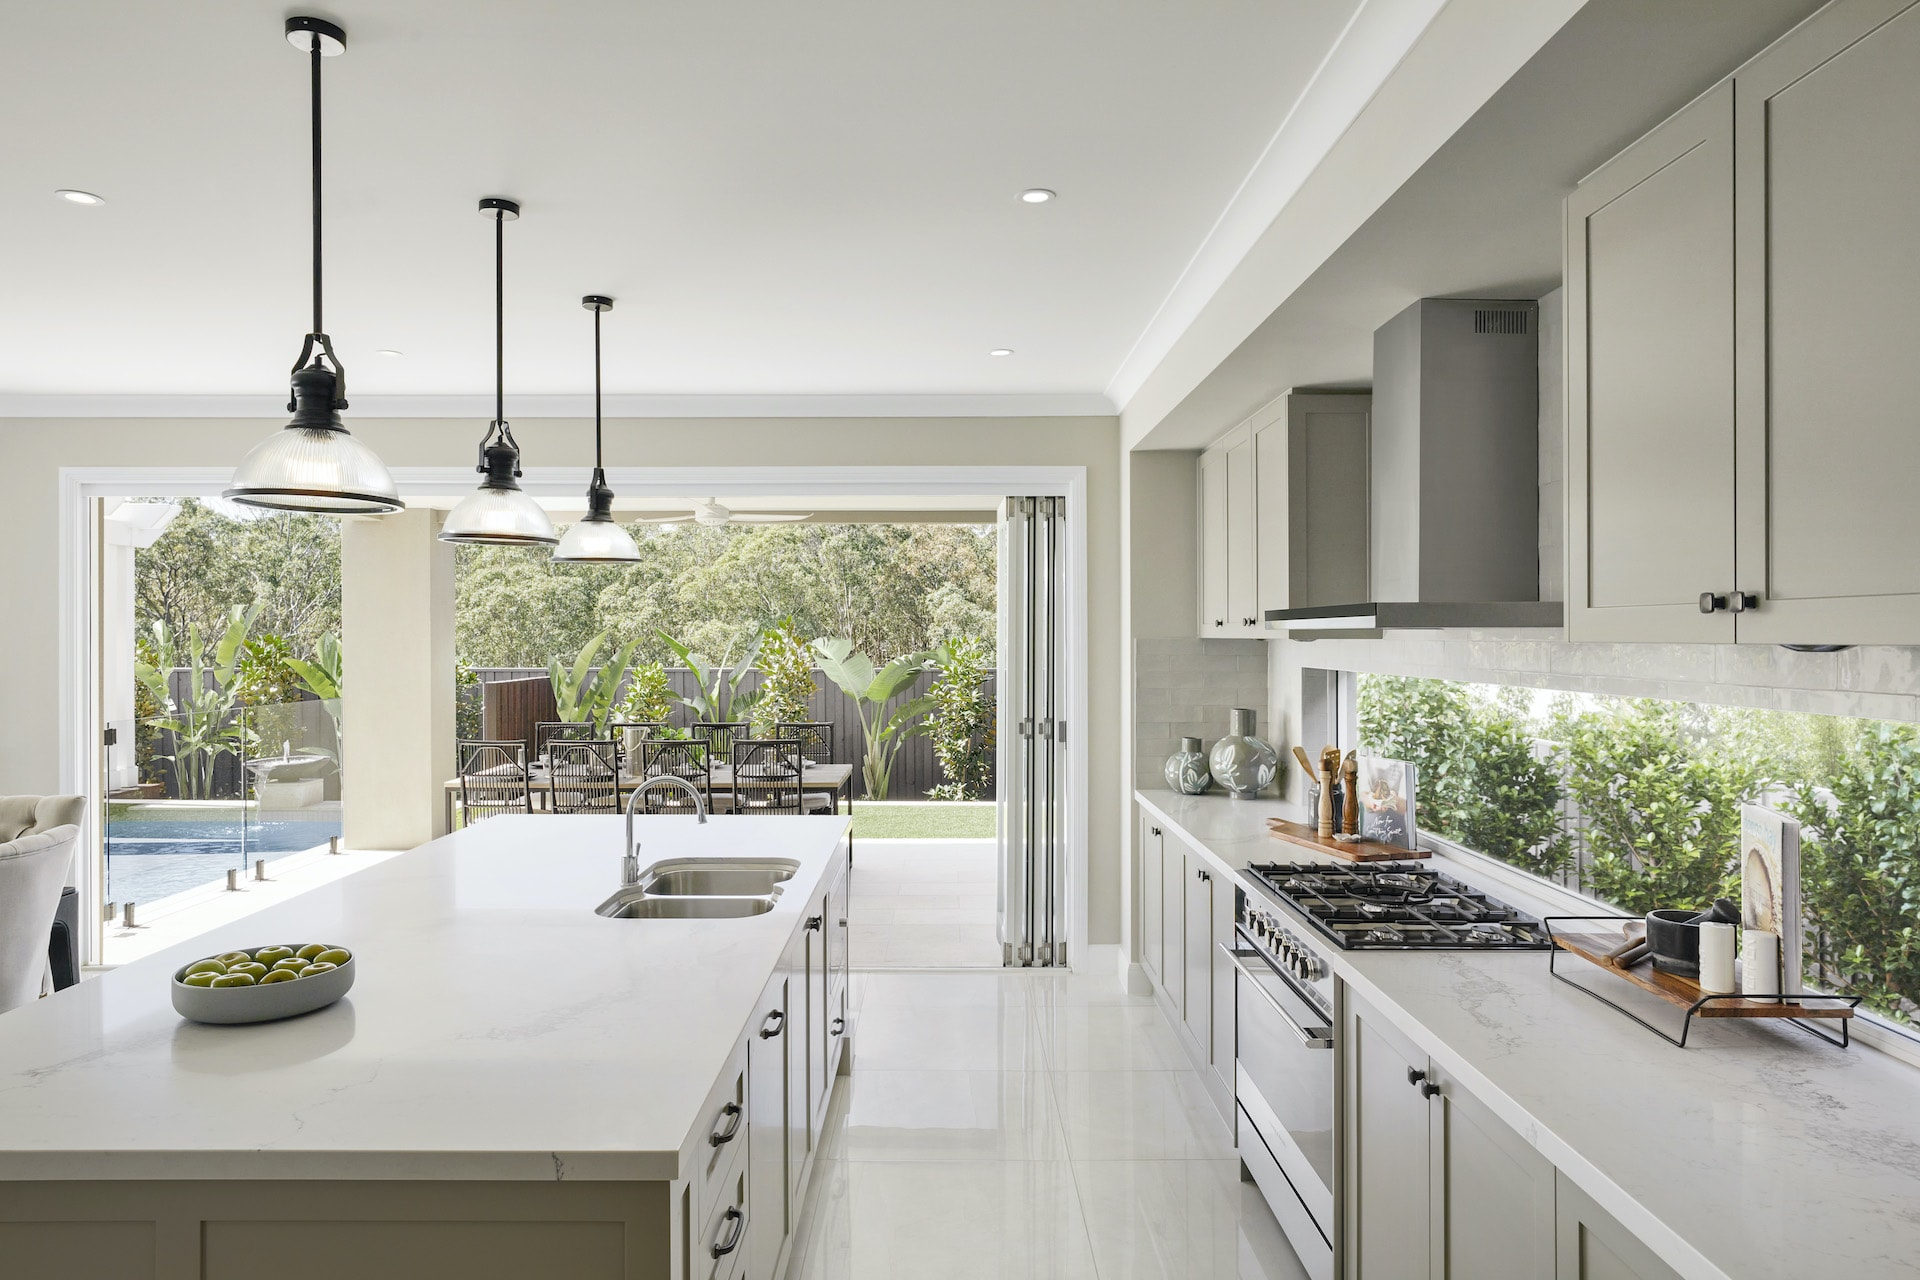 french provincial kitchen with grey shaker cabinets and industrial kitchen pendant lights